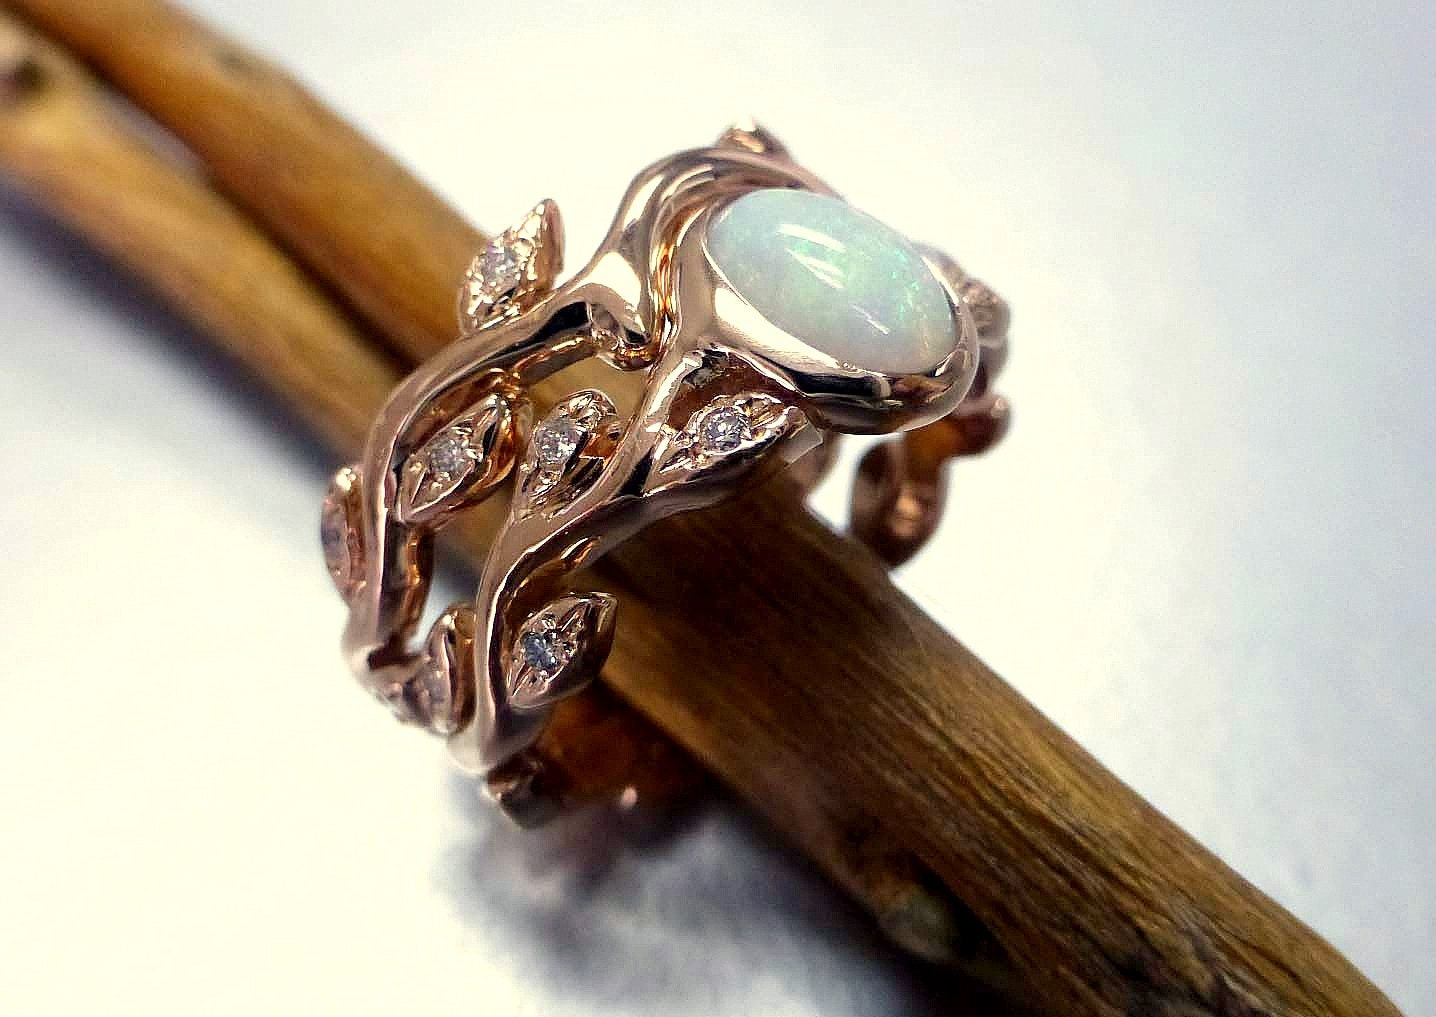 halo modern ring natural of oval opal by rings download meaning handphone size attachment engagement promise